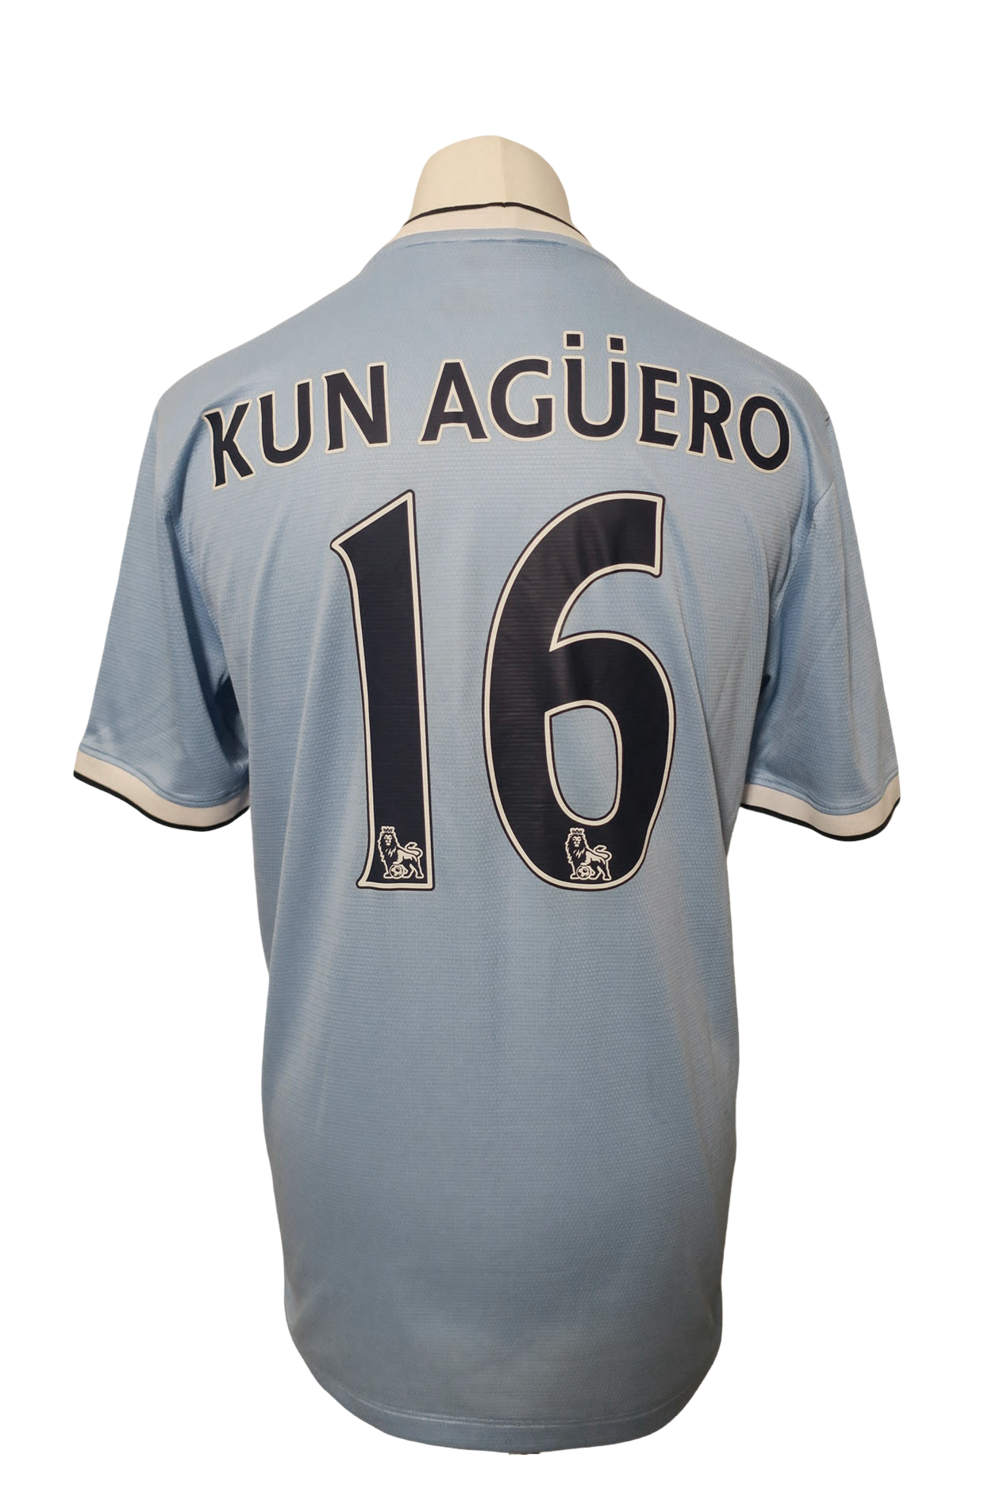 Manchester City Home 2013/14 #16 Kun Agüero